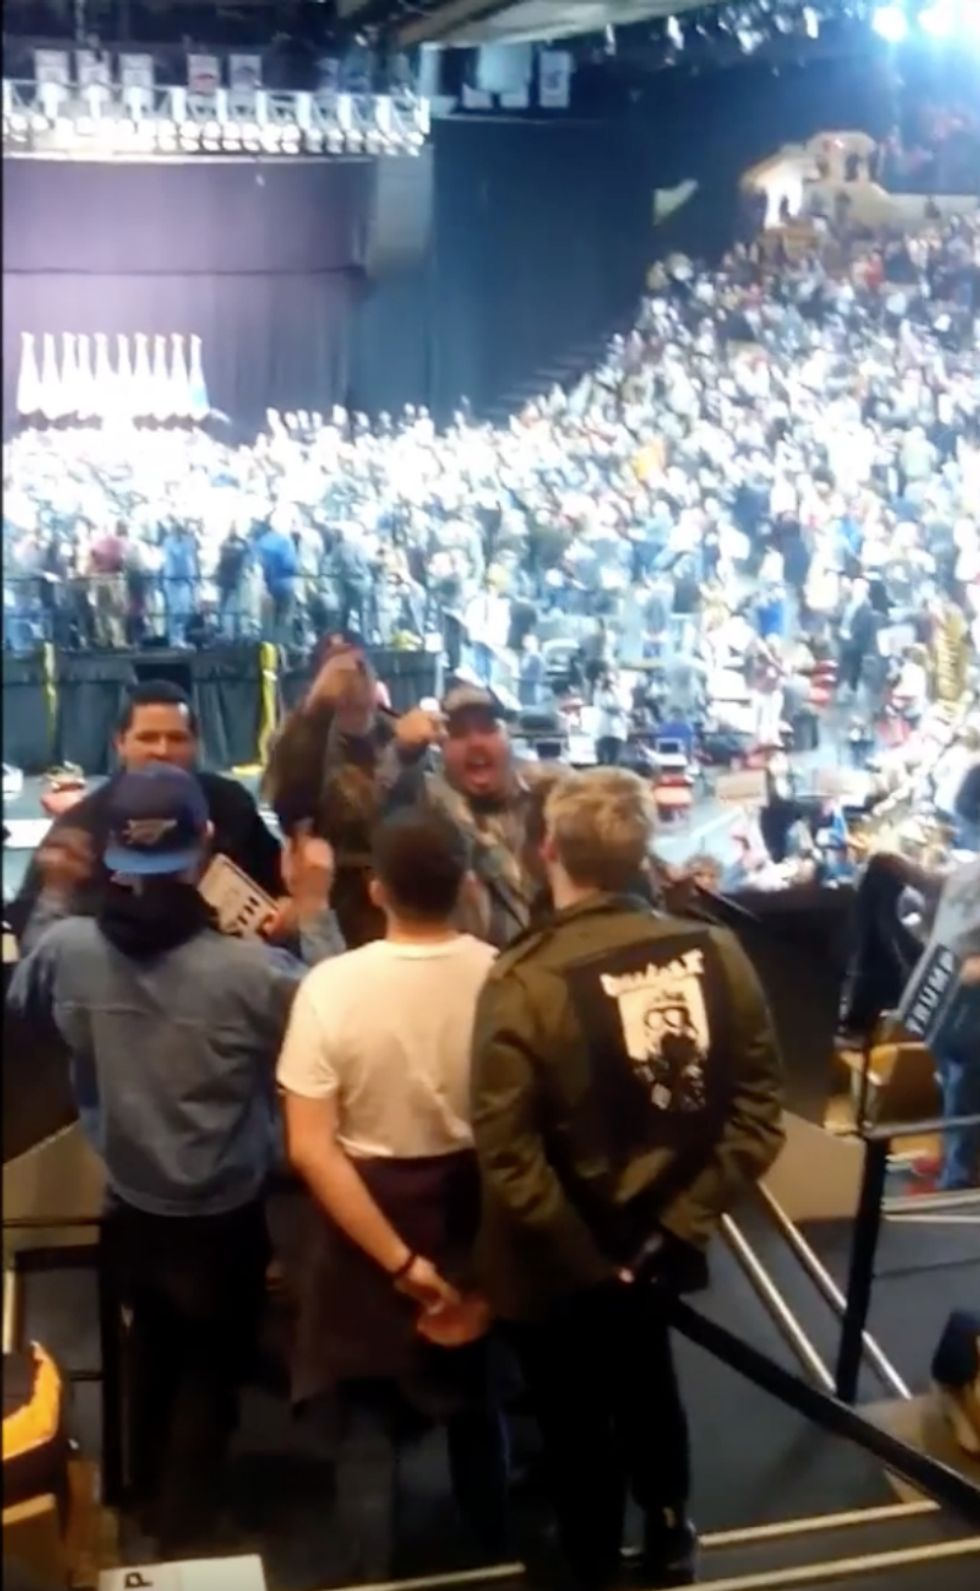 WATCH: Enraged Trump supporter puts protester in a headlock and tries to drag him away